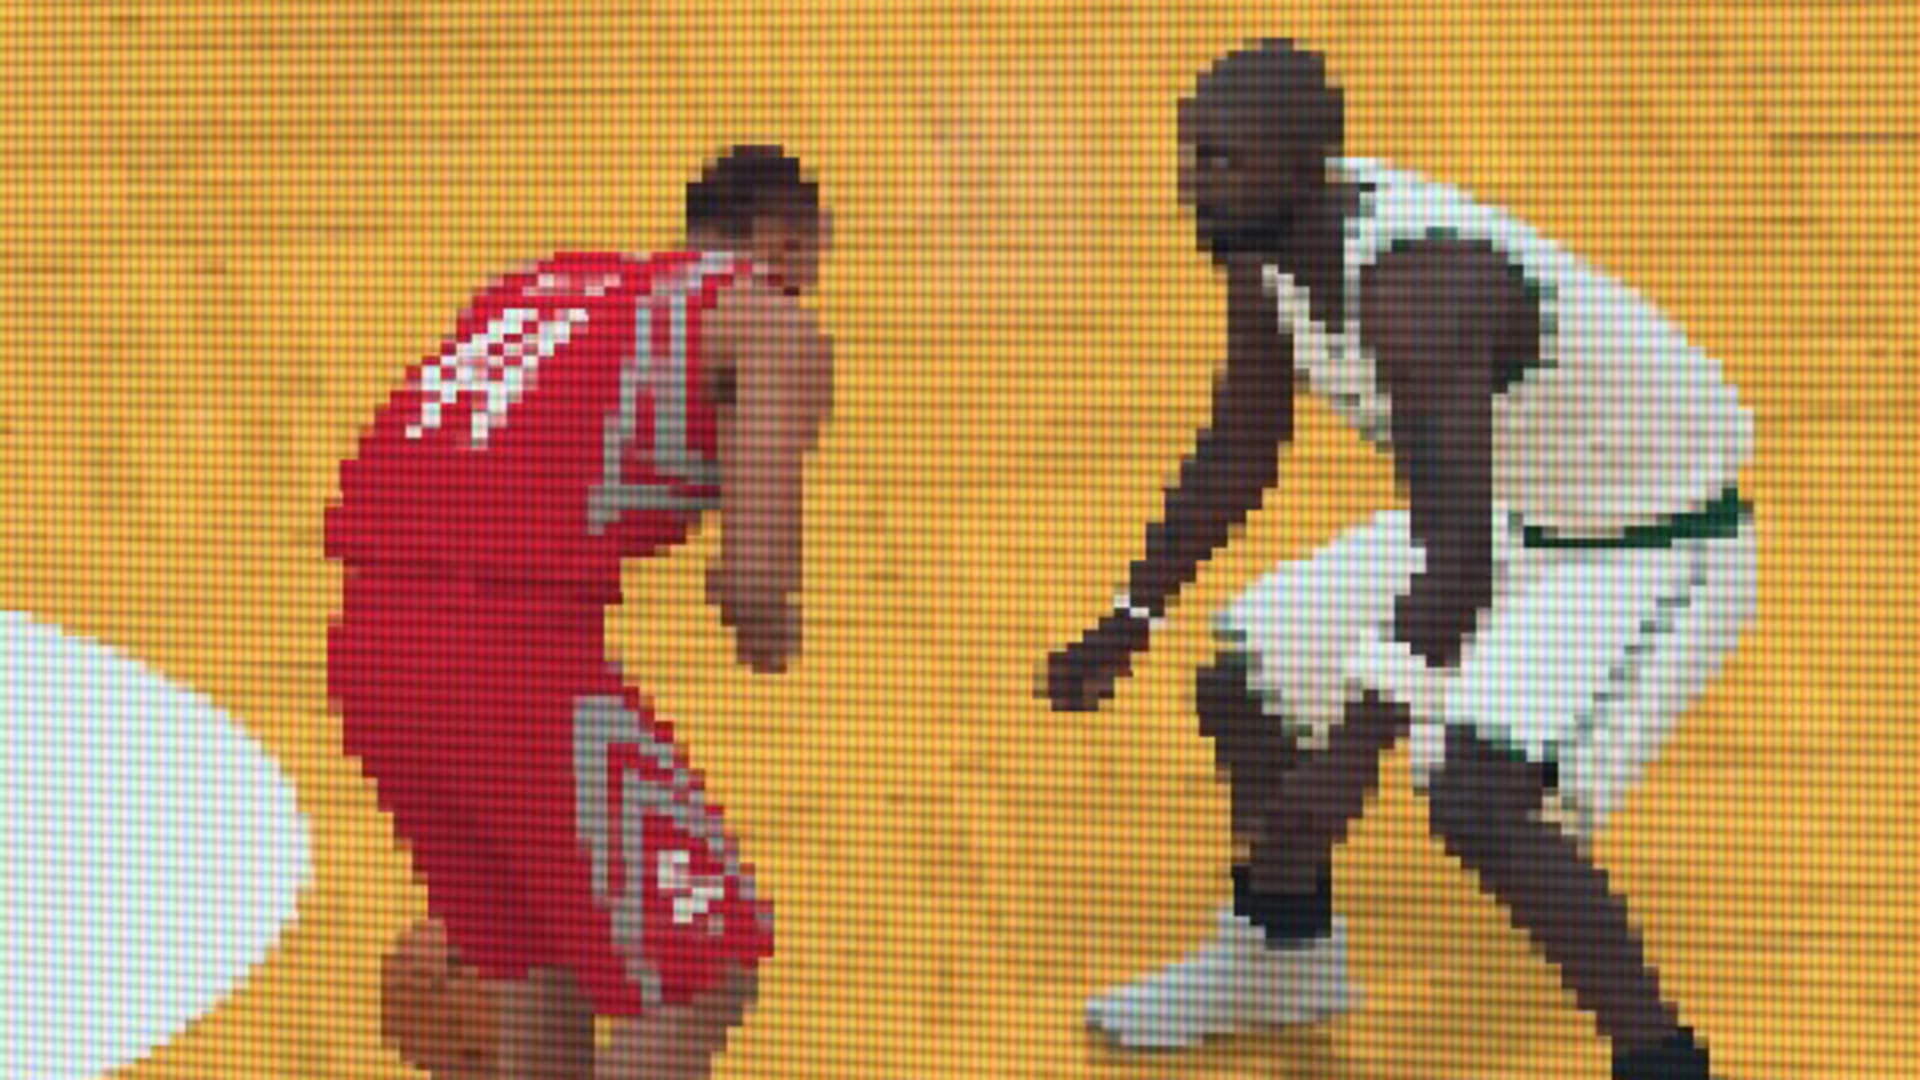 NBA 2K19 Has a Novel Way of Paying Tribute to the 2008 Celtics and Yao Ming: A Retro Arcade Game